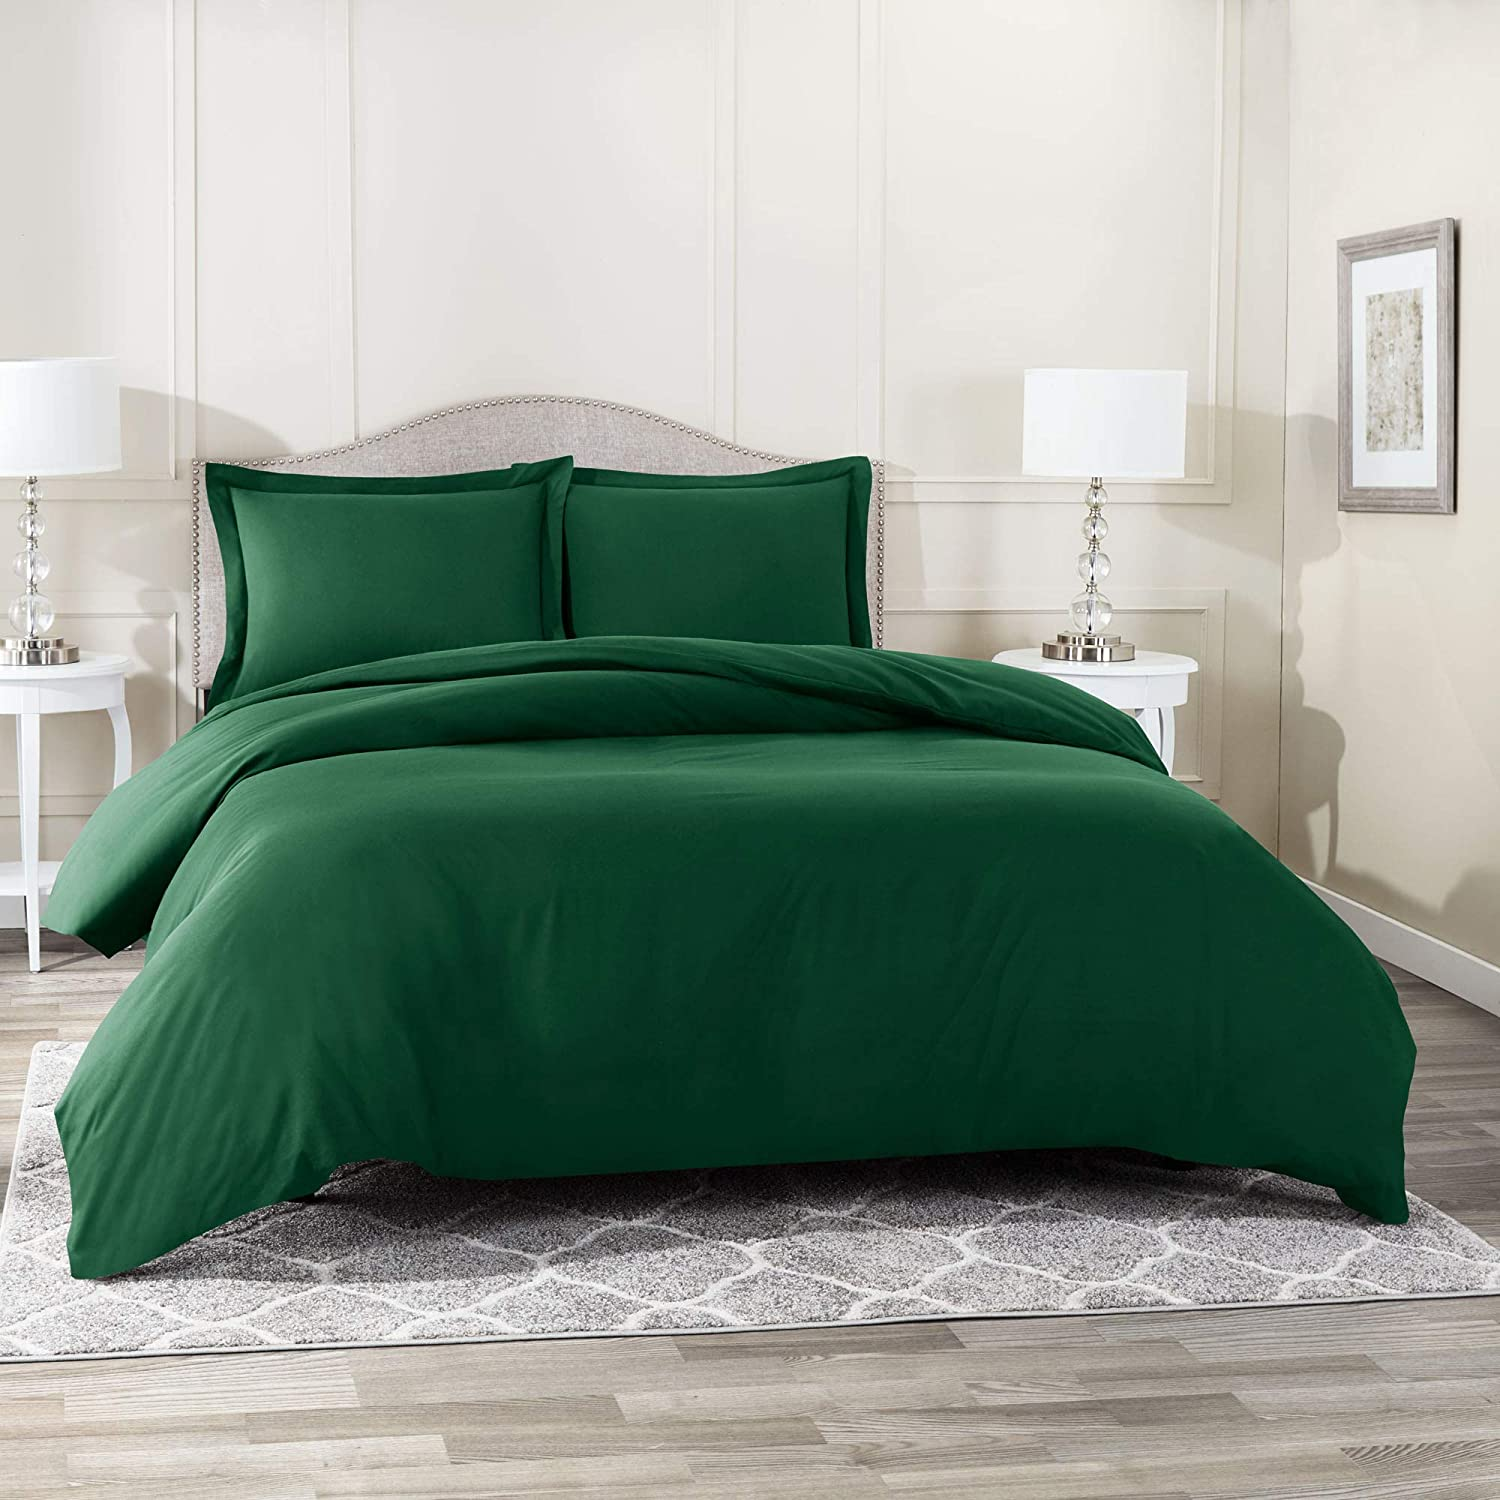 """Nestl Bedding Duvet Cover 3 Piece Set – Ultra Soft Double Brushed Microfiber Hotel Collection – Comforter Cover with Button Closure and 2 Pillow Shams, Hunter Green - Full (Double) 80""""x90"""""""